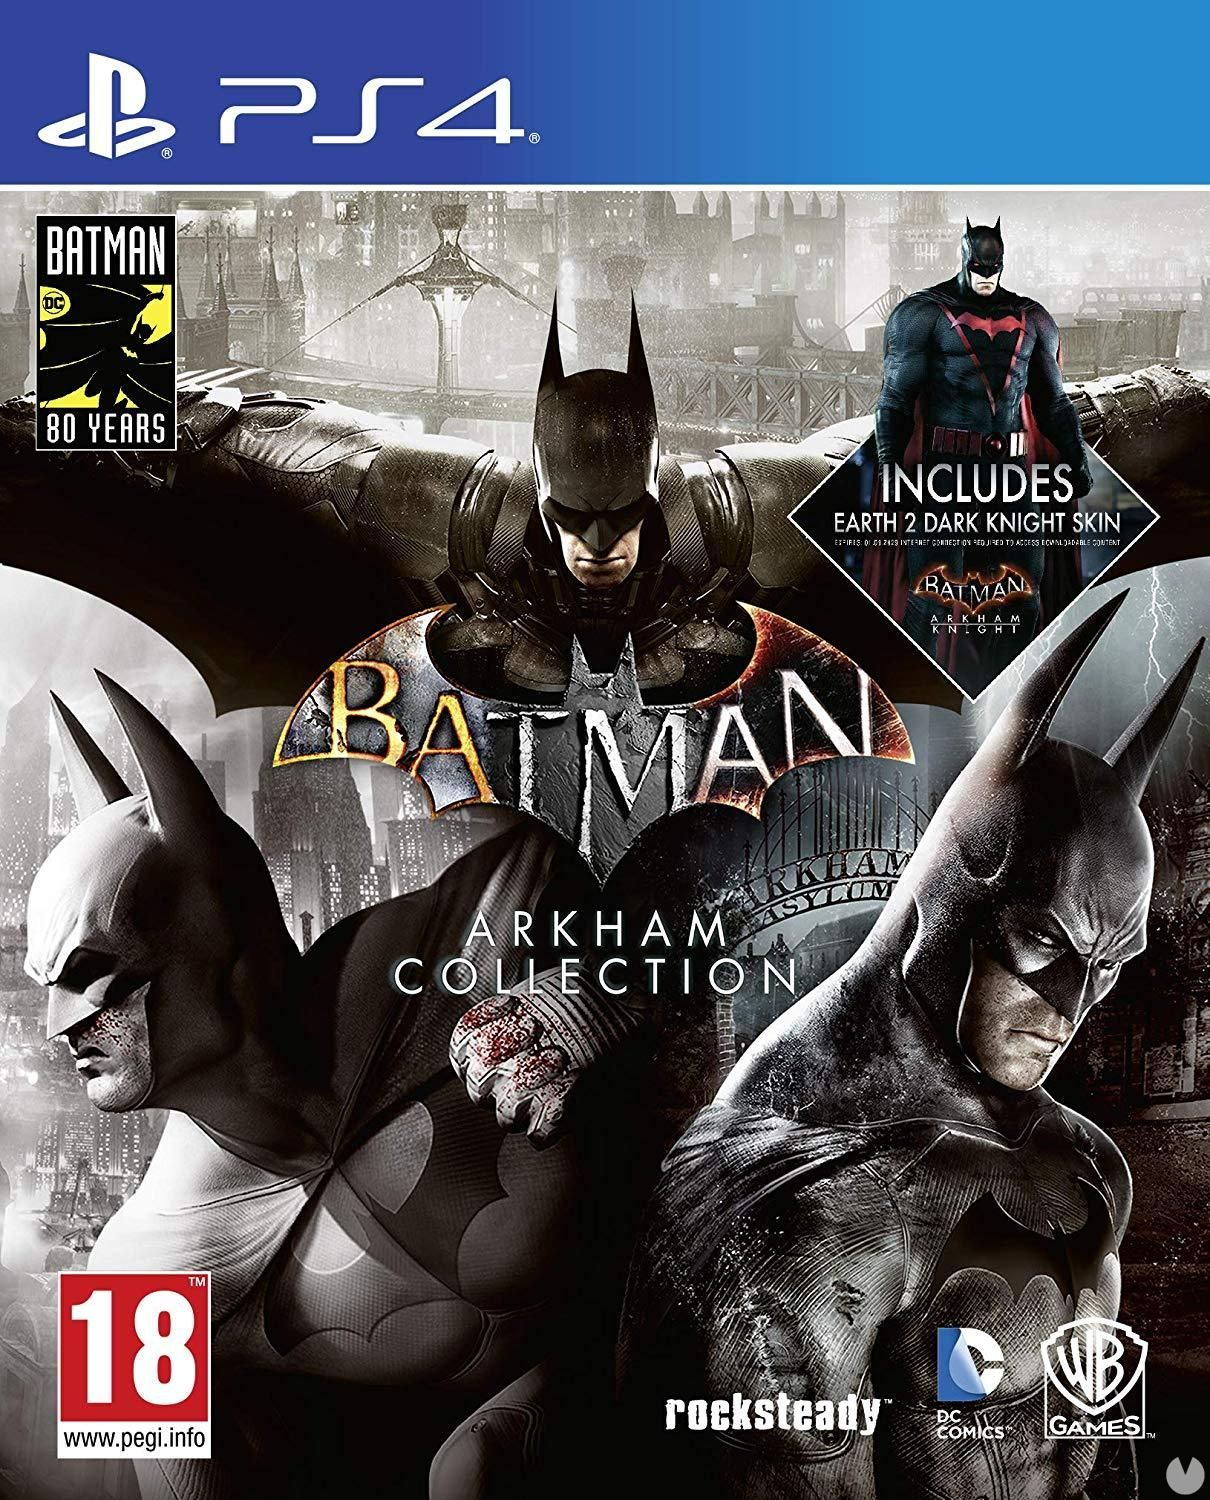 The Batman Arkham Collection will edition physics the 6th of September